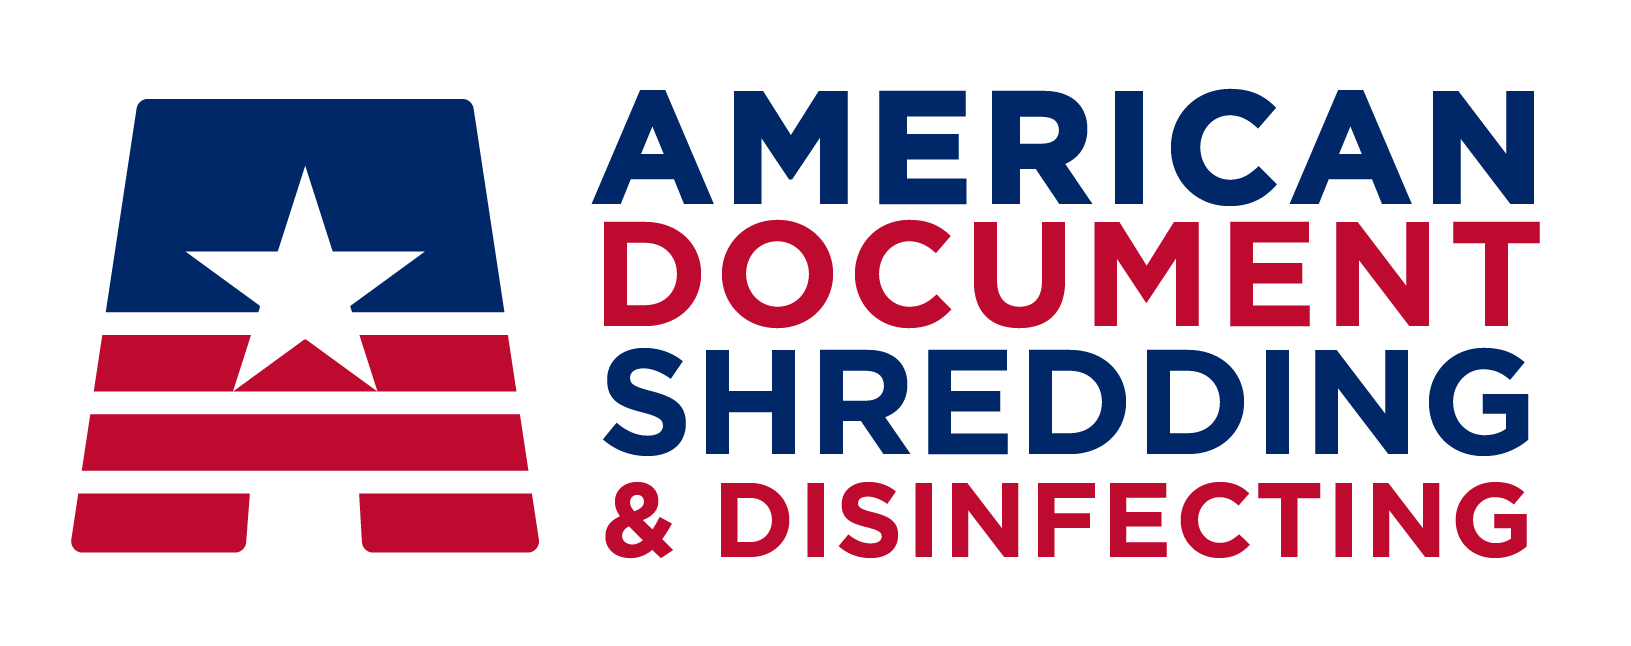 American Document Shredding